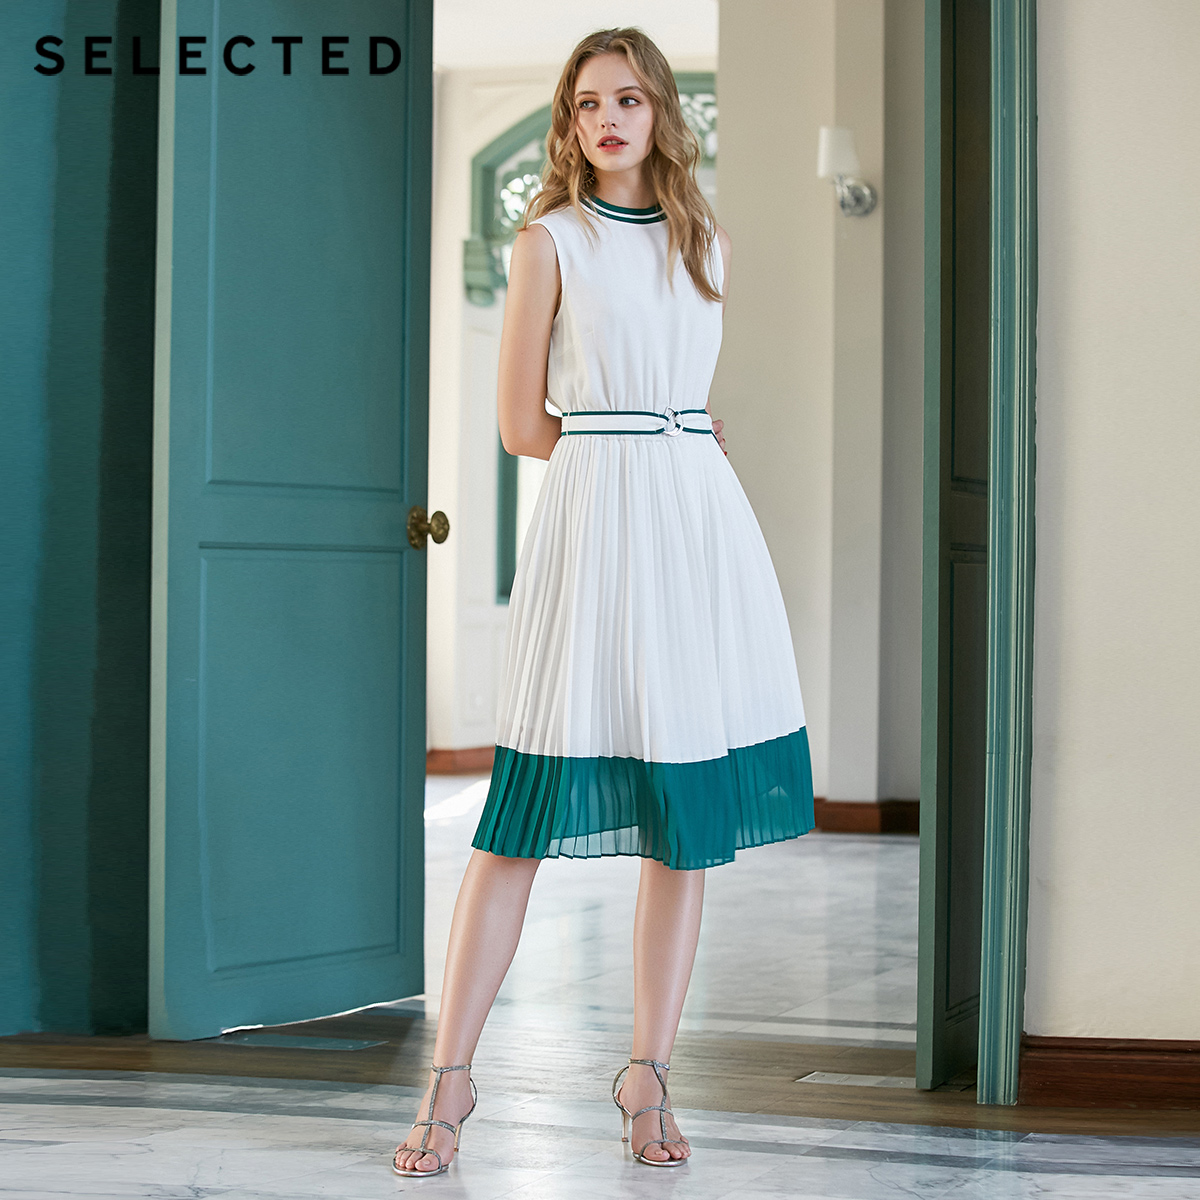 SELECTED Summer Slim Fit Sleeveless Pleated Midi Dress S41922J536-in Dresses from Women's Clothing    1